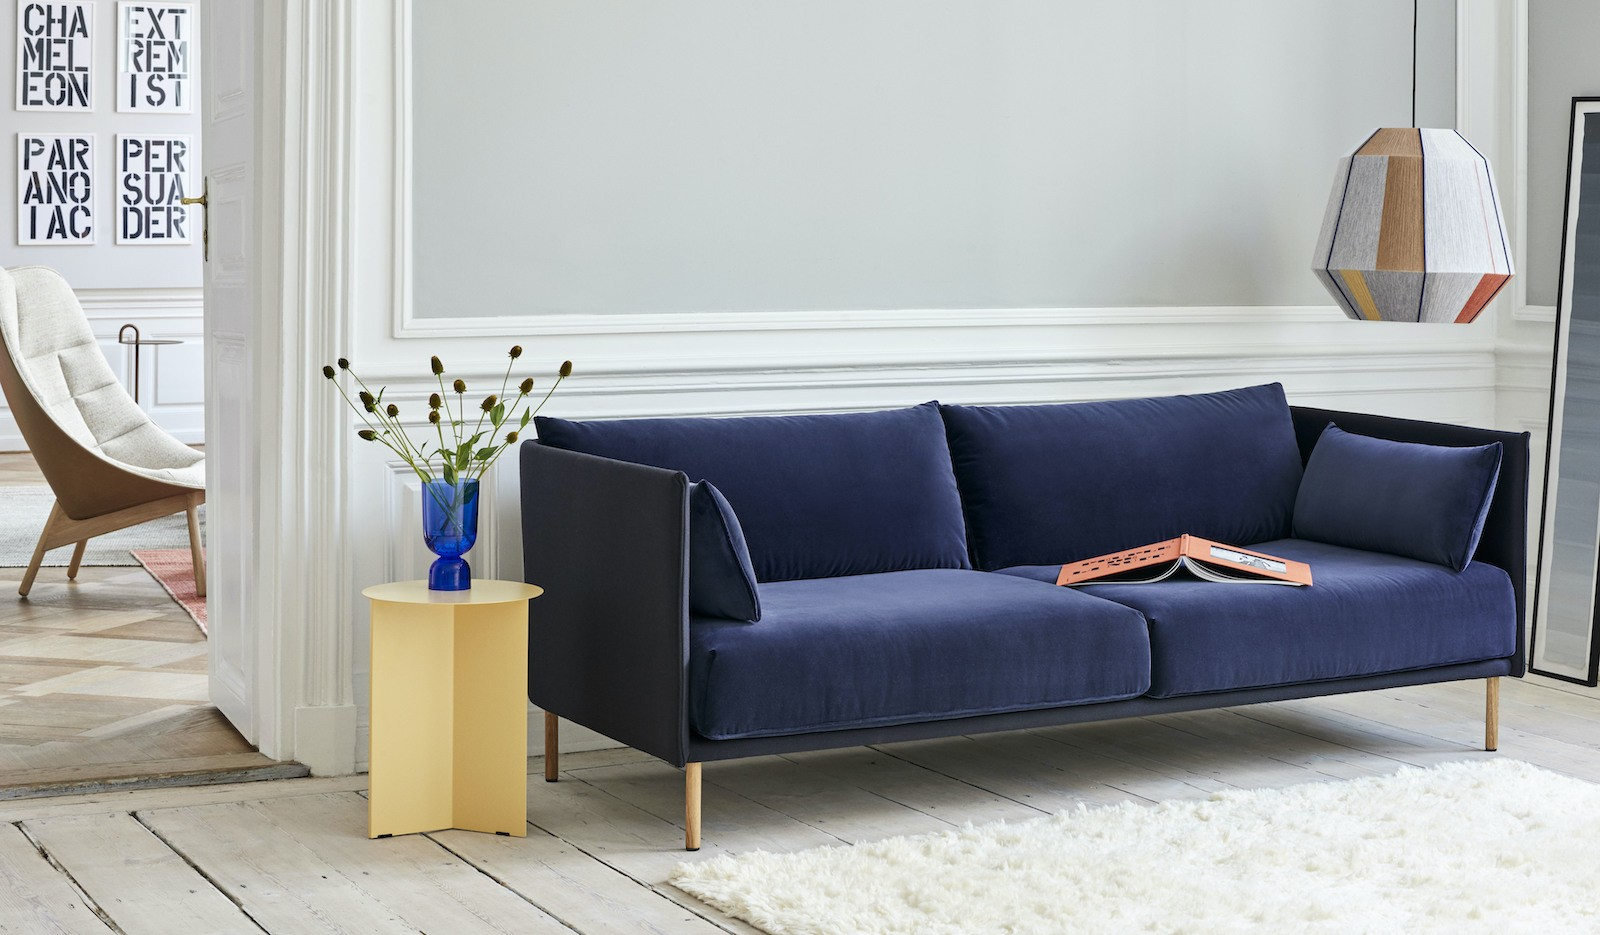 Silhouette Sofa Duo 3 seater back Steelcut Trio 195 cushions Lola navy oiled oak legs_Slit Table High light yellow_Bonbon earth tones